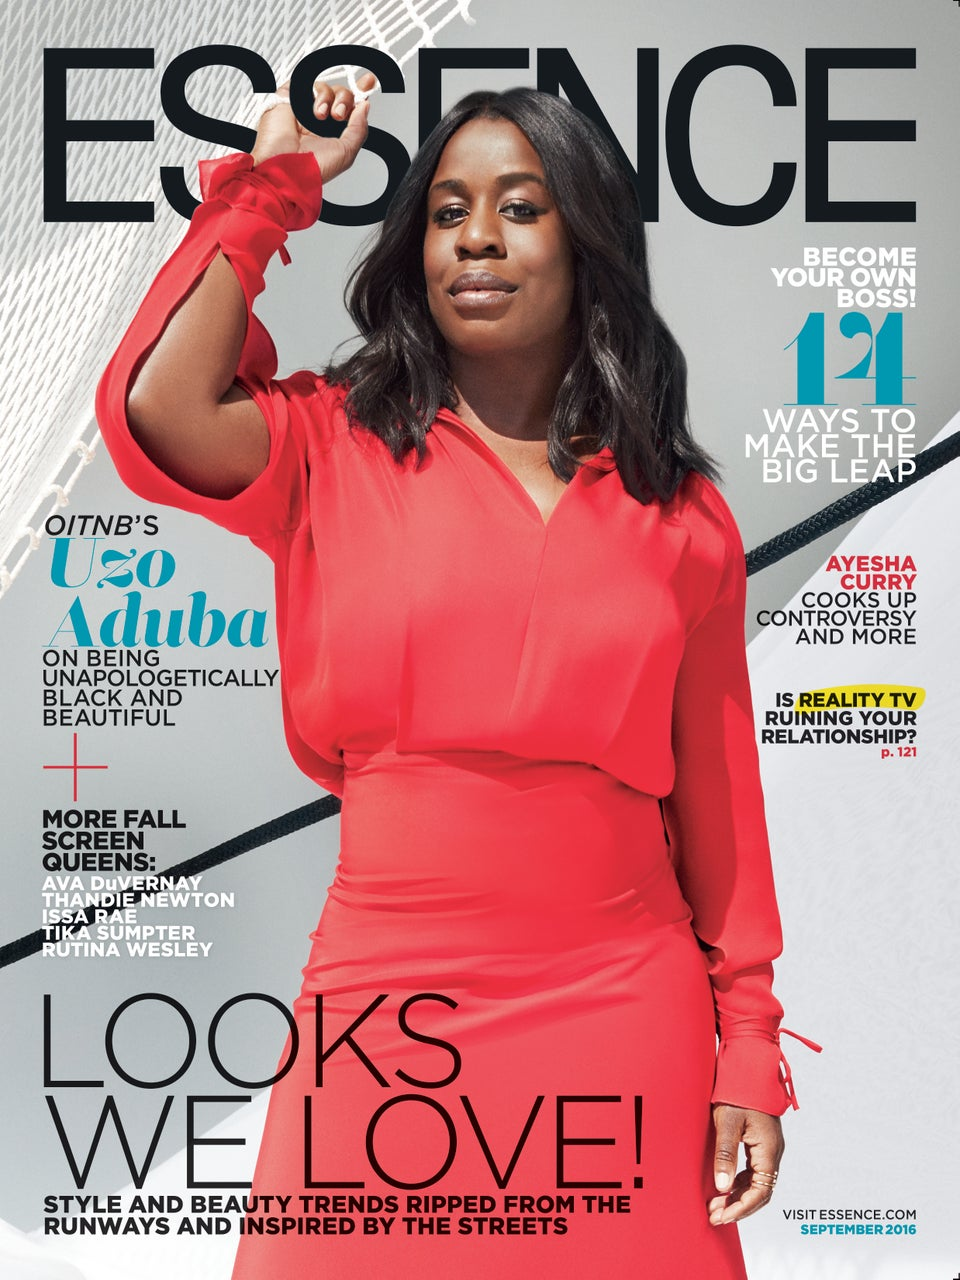 7 Things You Didn't Know About Uzo Aduba